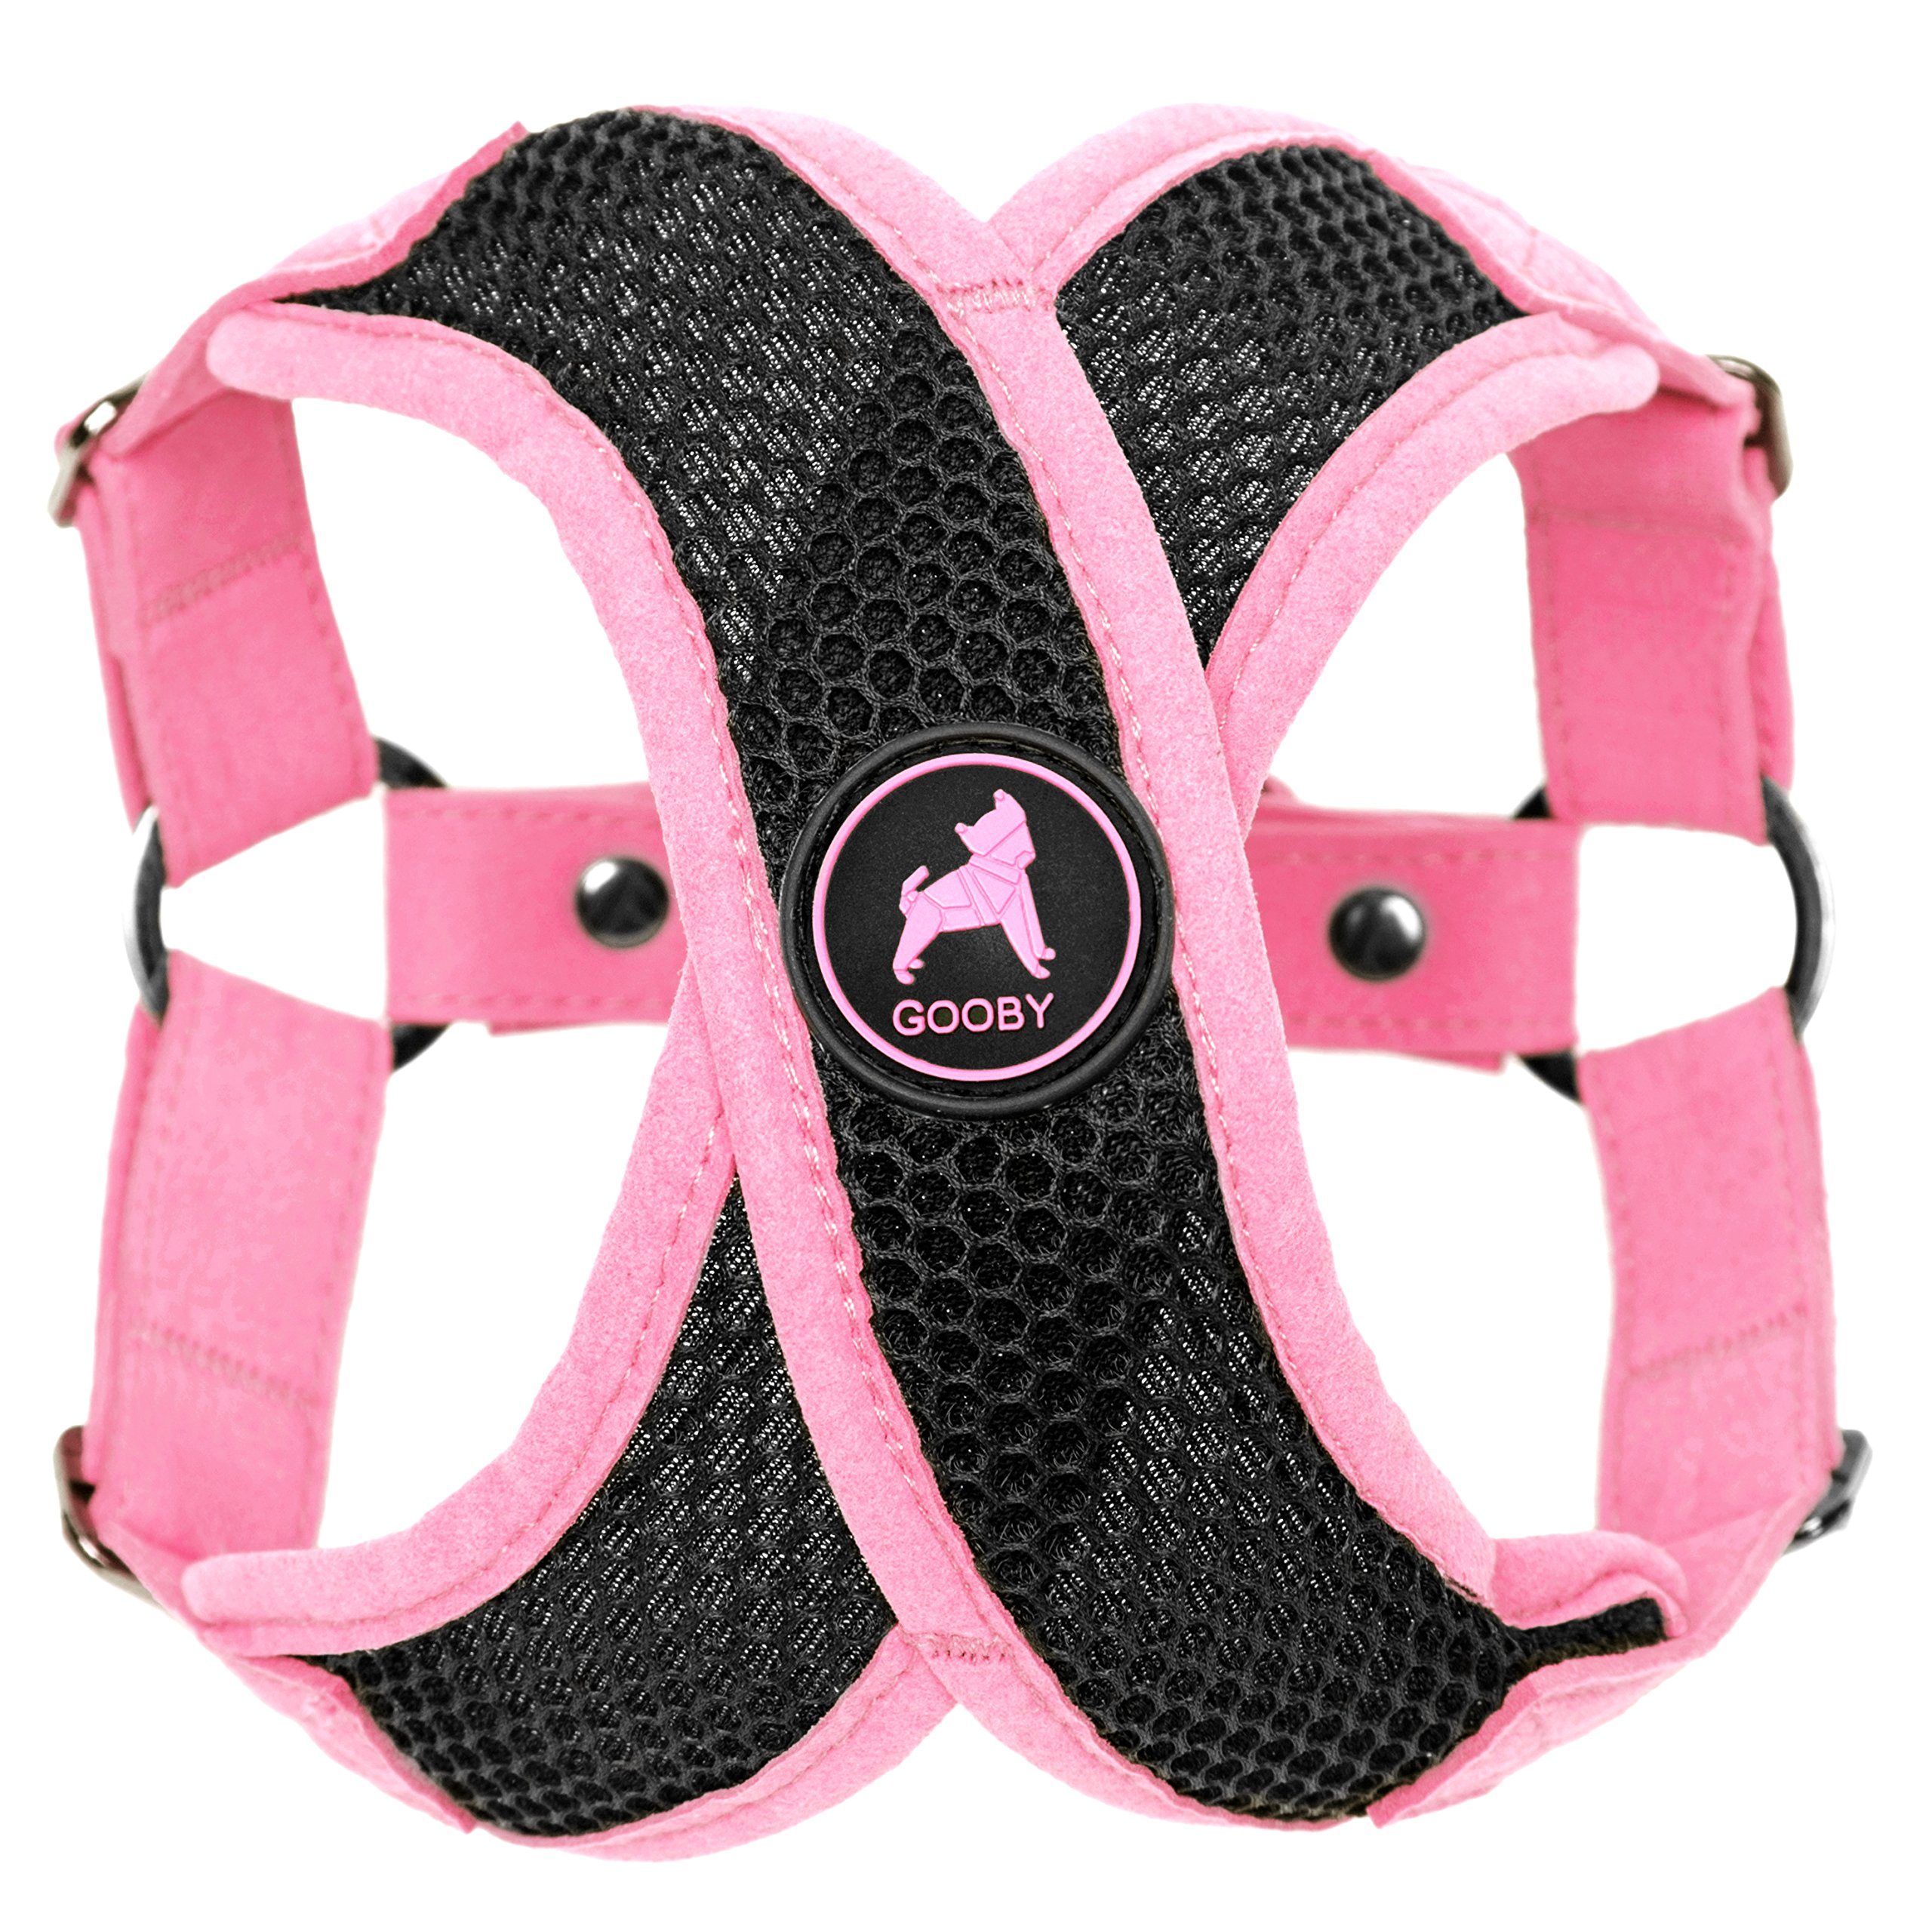 Gooby - Active X Step-in Harness, Choke Free Small Dog Harness with Synthetic Lambskin Soft Strap, Pink, Medium by Gooby